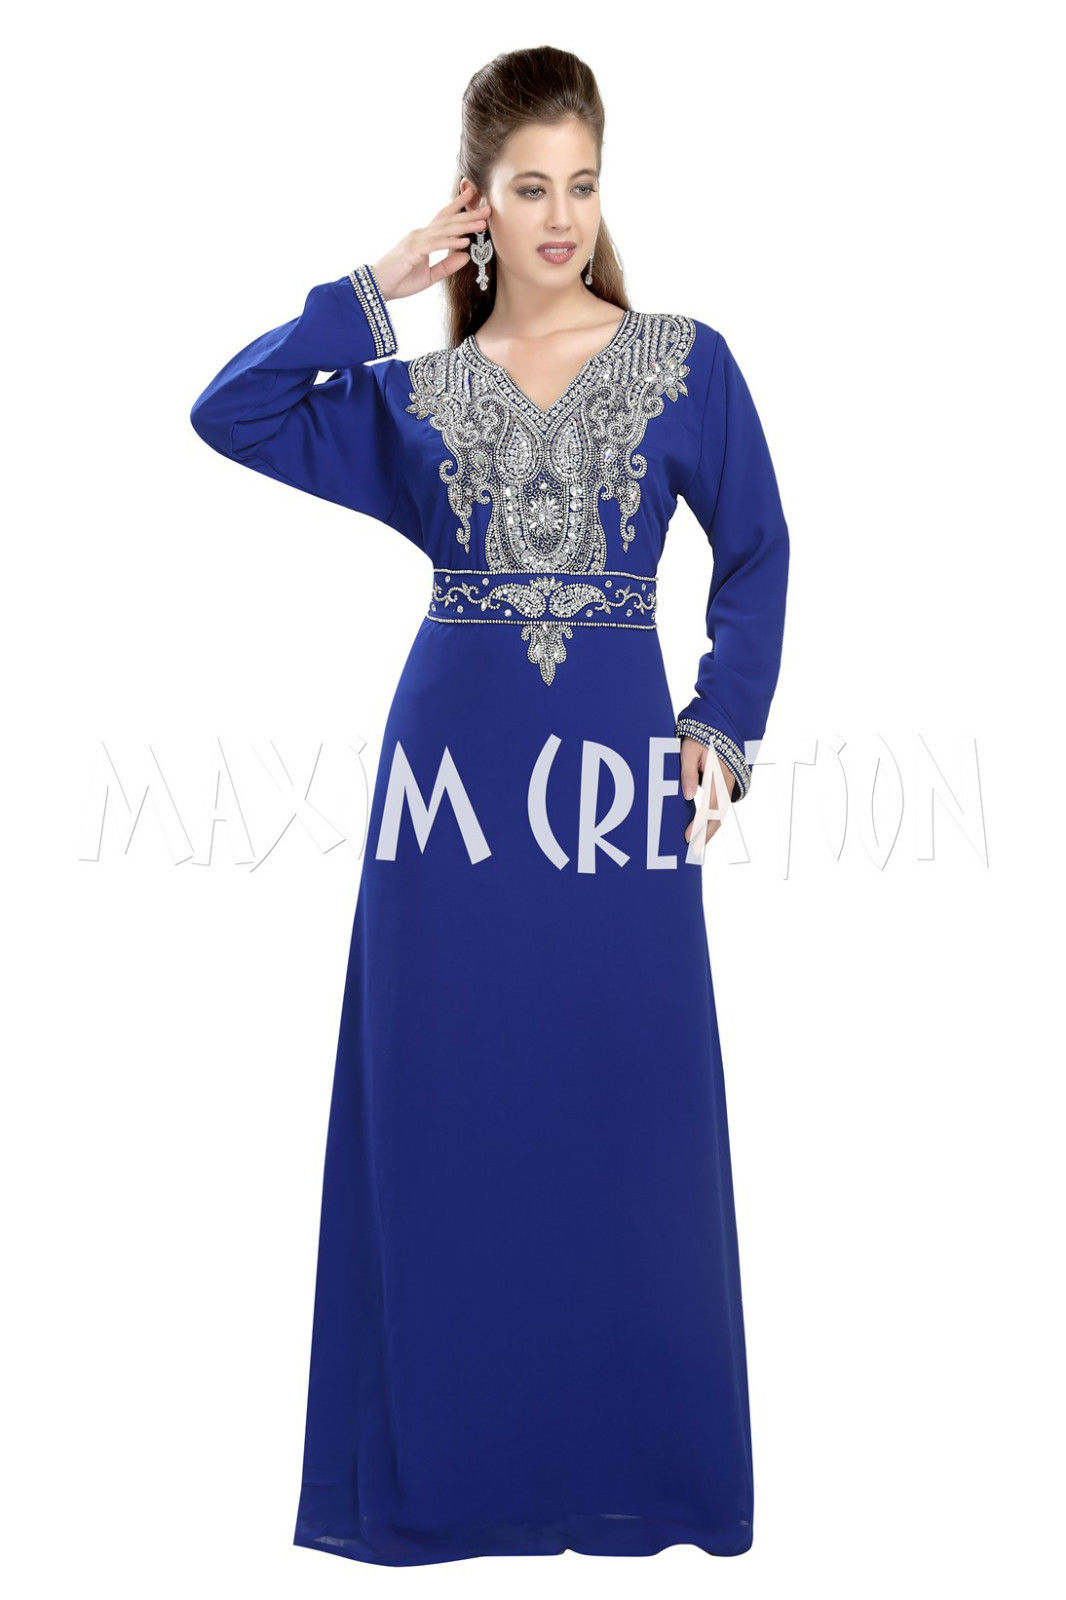 MODERN DUBAI KAFTAN WITH BLING EMBROIDERY FOR WOMEN ONLY